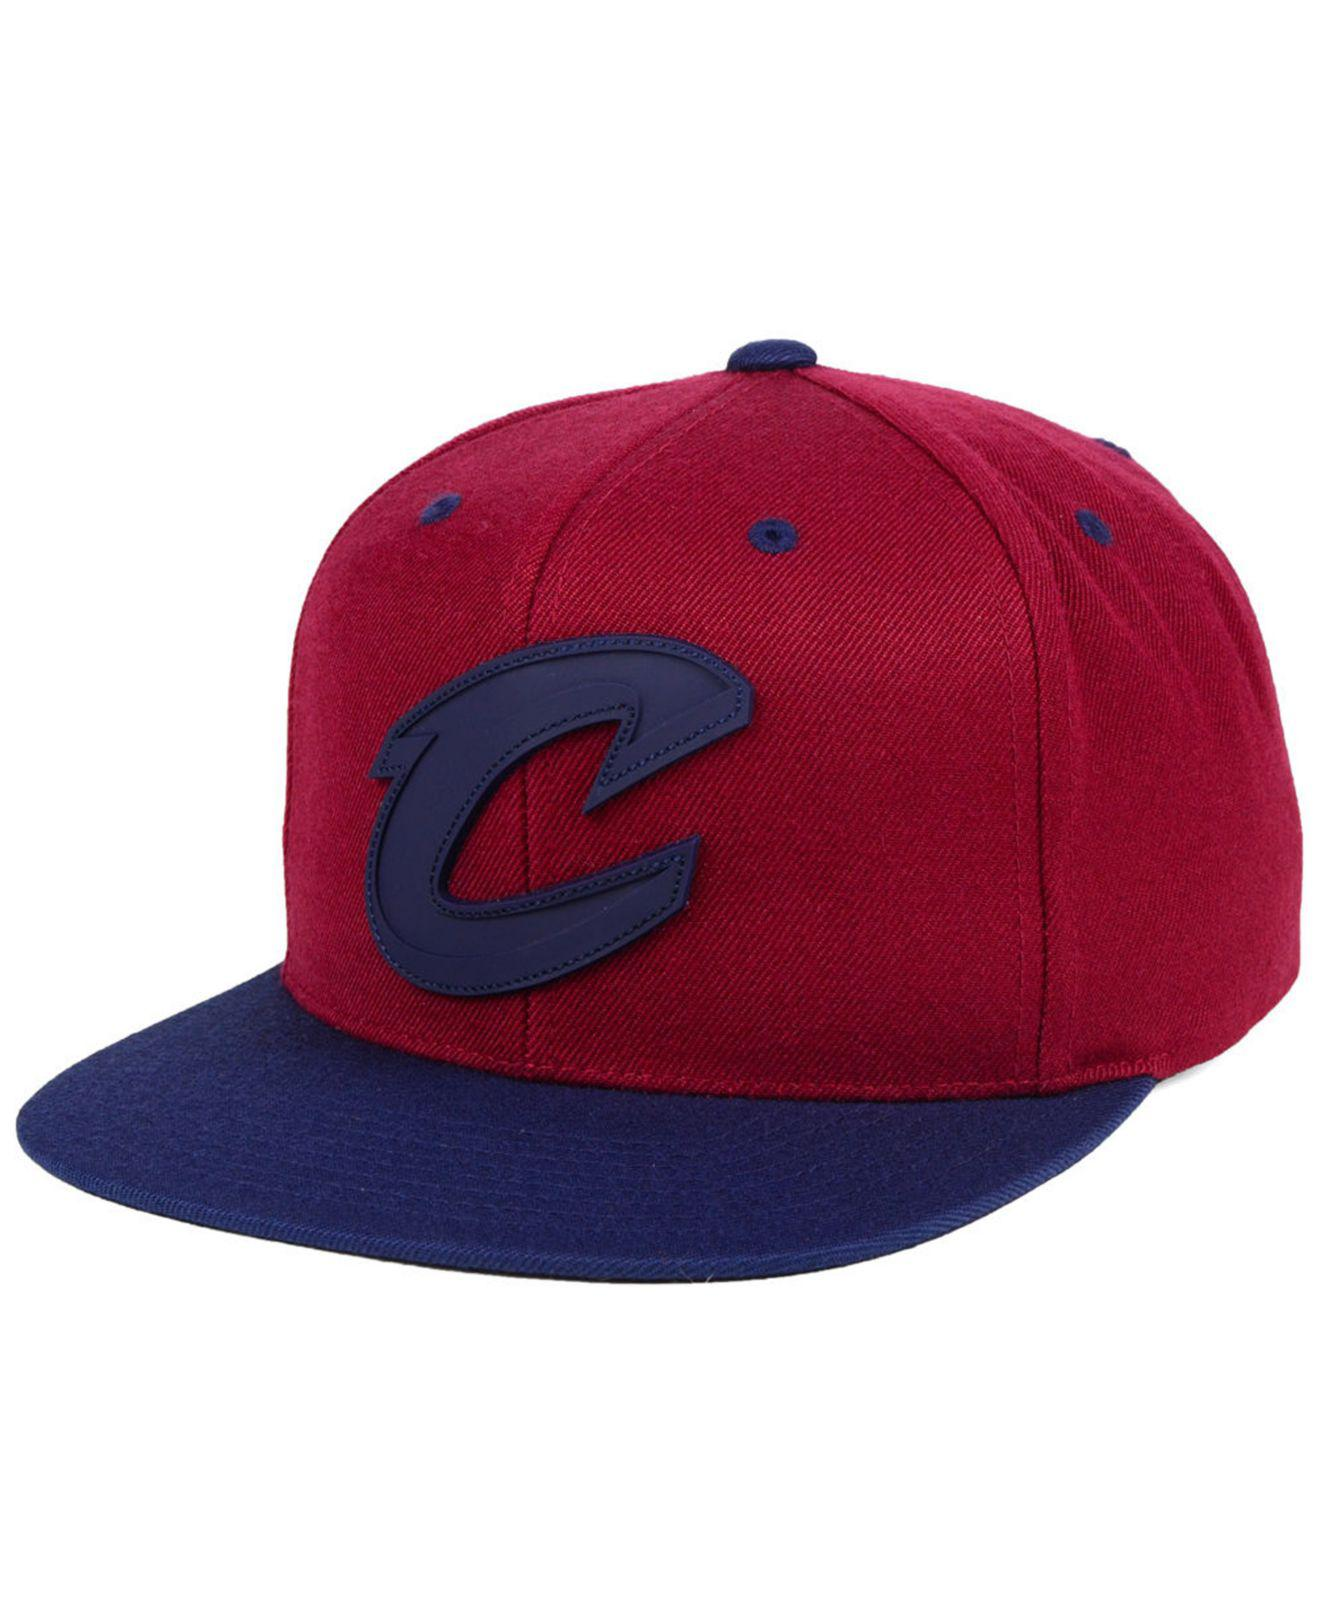 cfdac55925e Lyst - Mitchell   Ness Cleveland Cavaliers Rubber Weld Snapback Cap ...